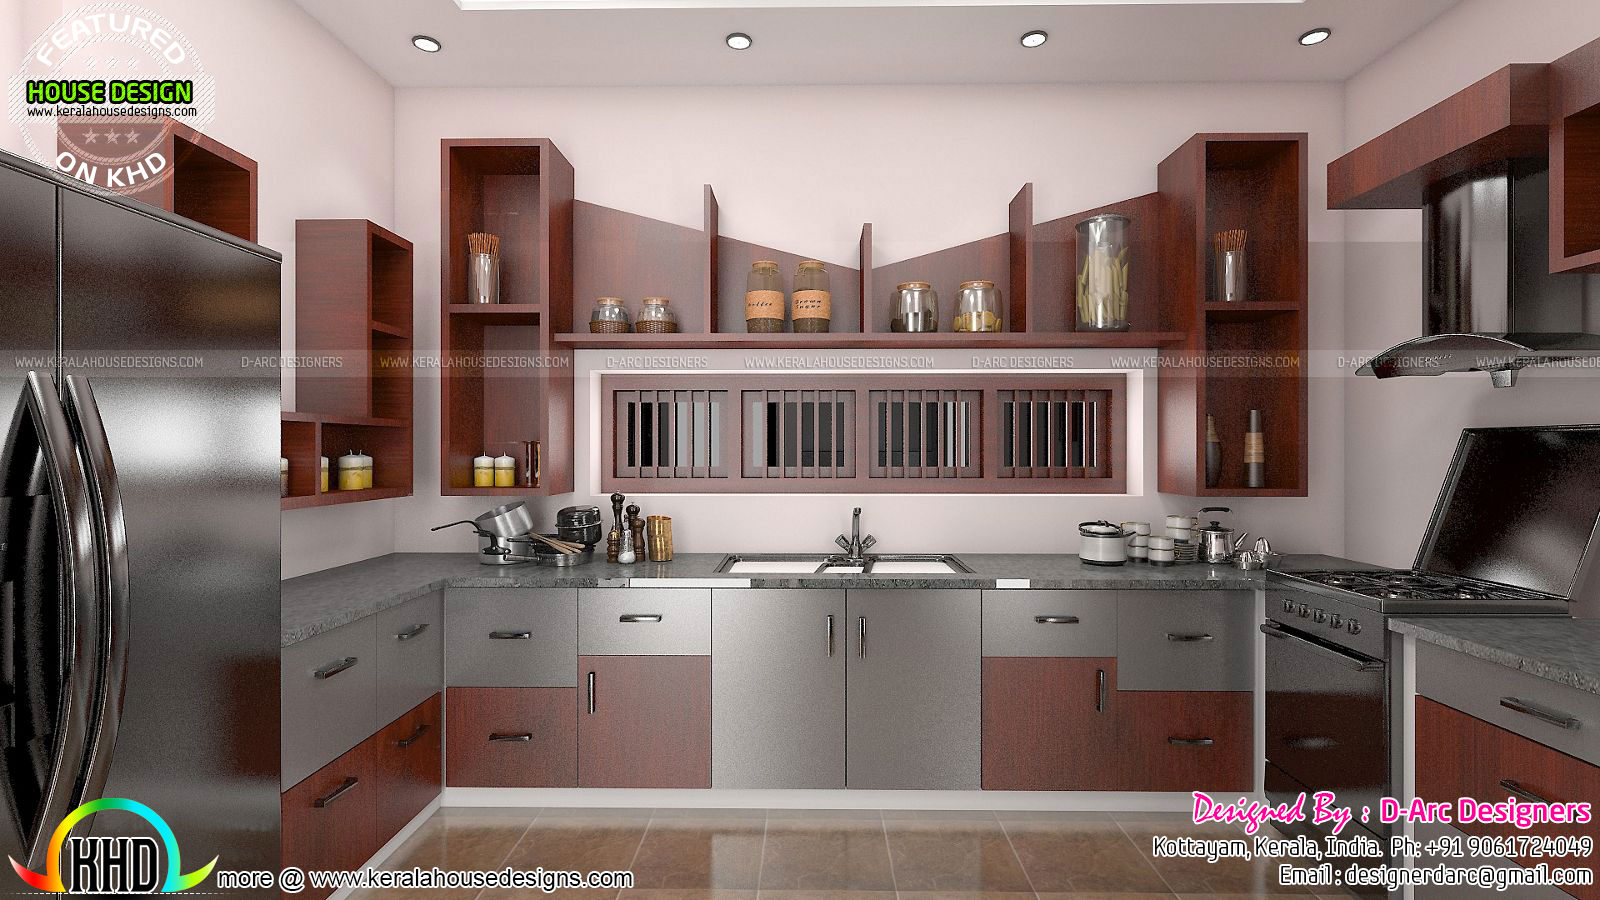 modern interiors design trends kerala home design floor kitchen design ideas set